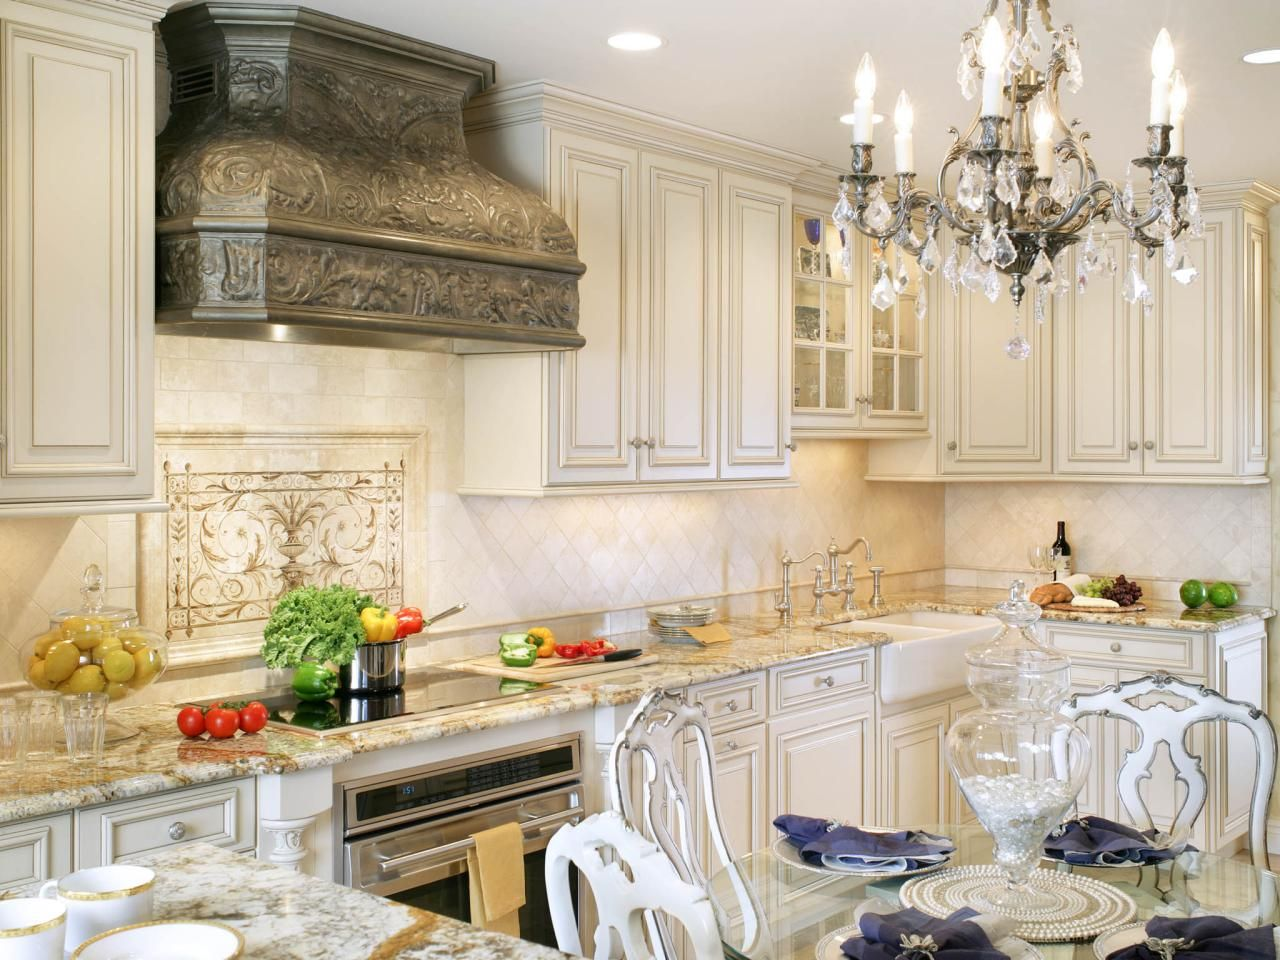 pictures of the year s best kitchens nkba kitchen design awesome 2014 kitchen ideas beautiful homes design